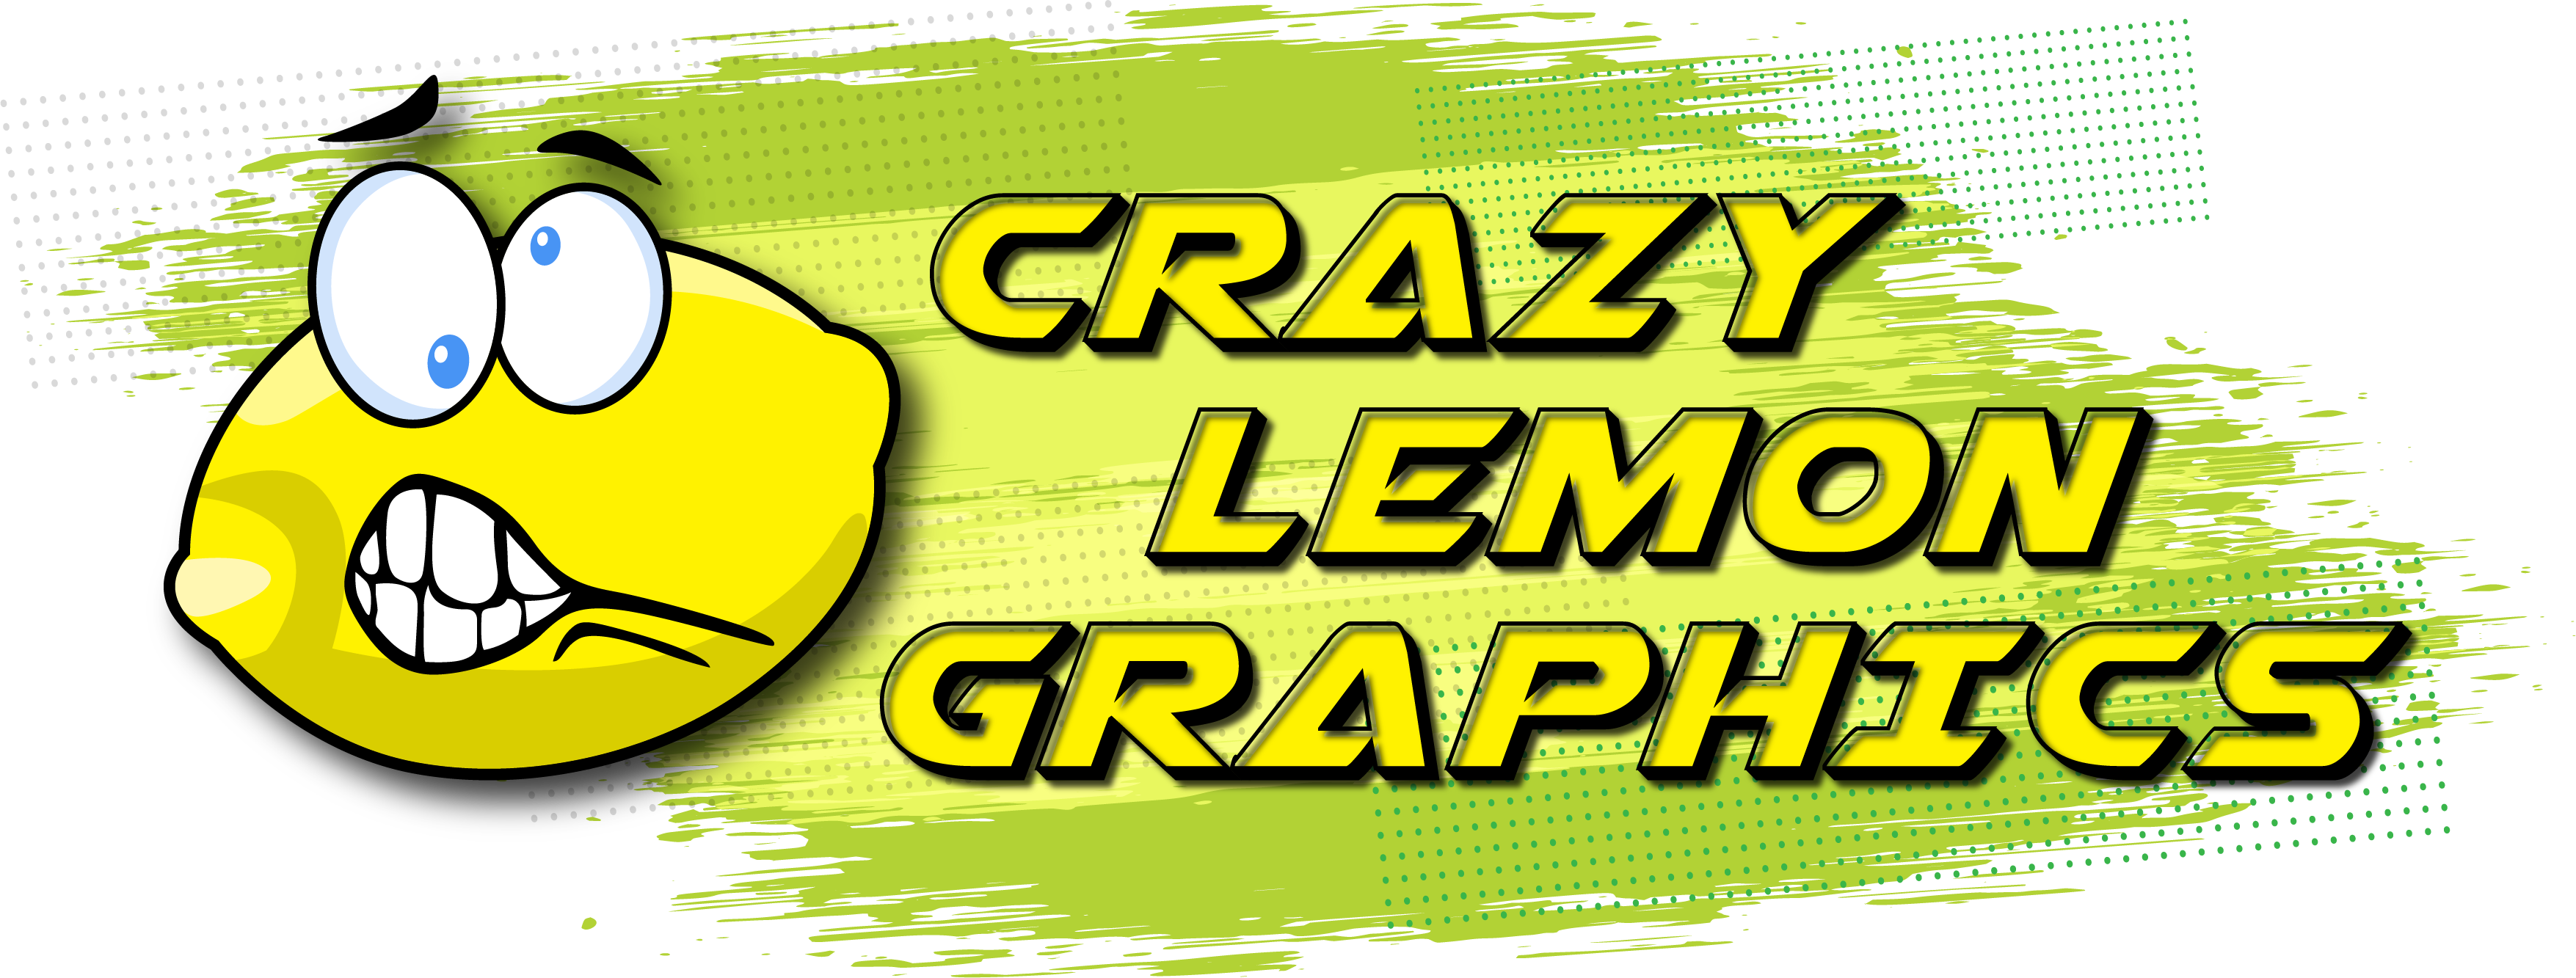 Crazy Lemon Graphics - Graphic and Web Design Services